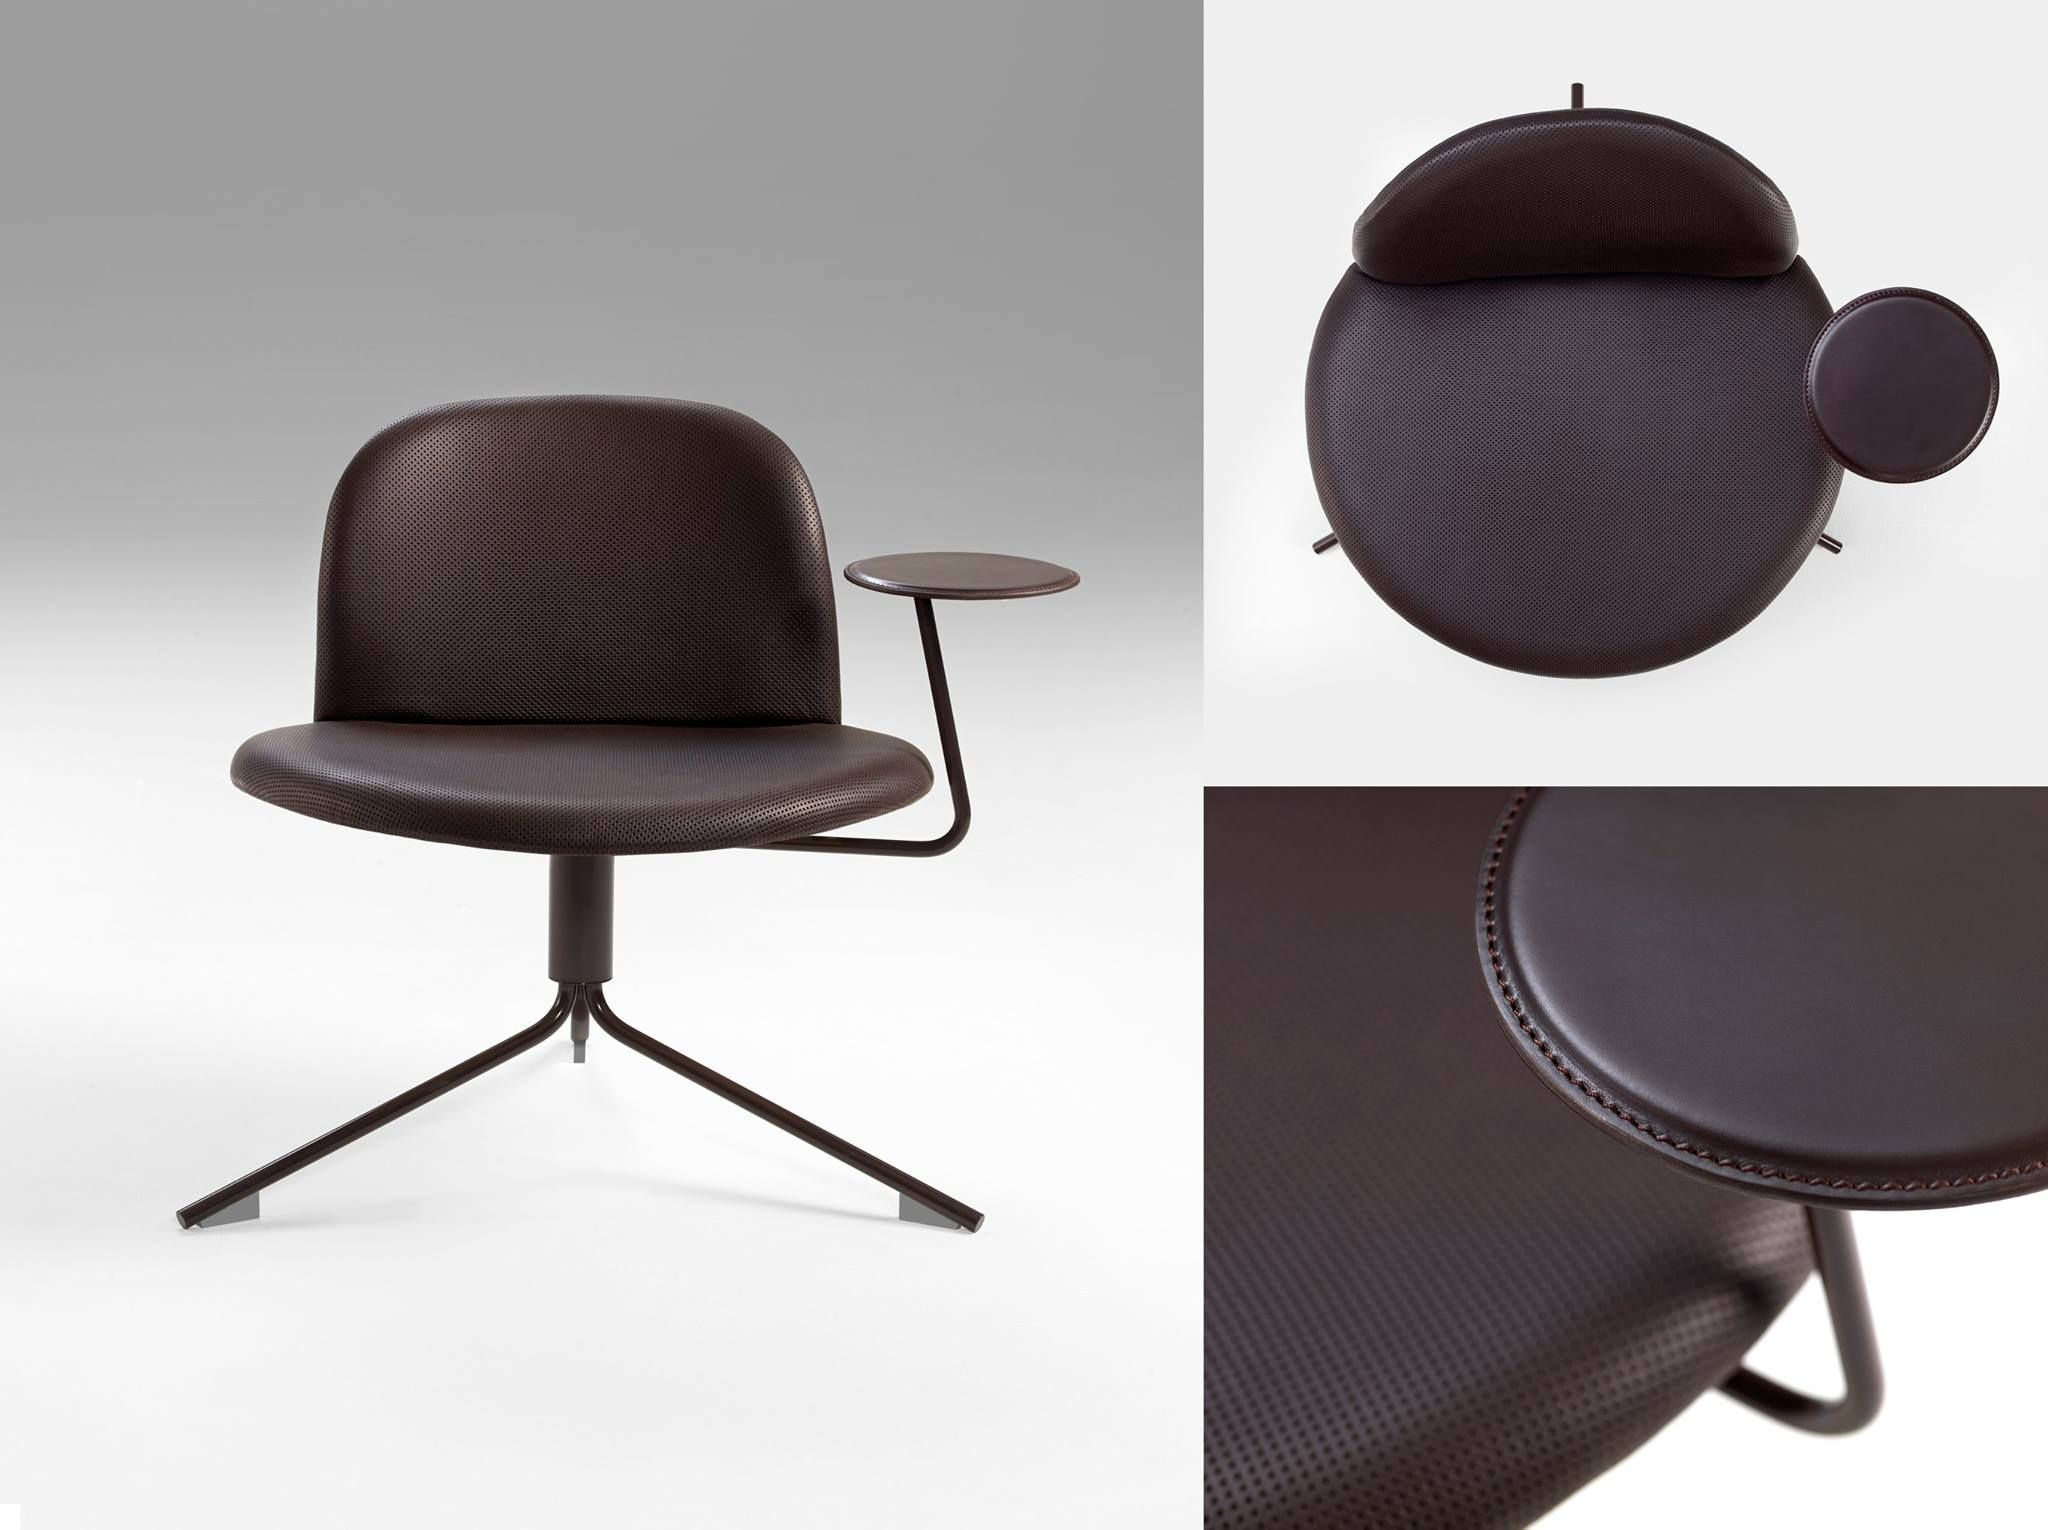 Spinning Chair Satellite Chair Designed By Richard Hutten For Offecct A